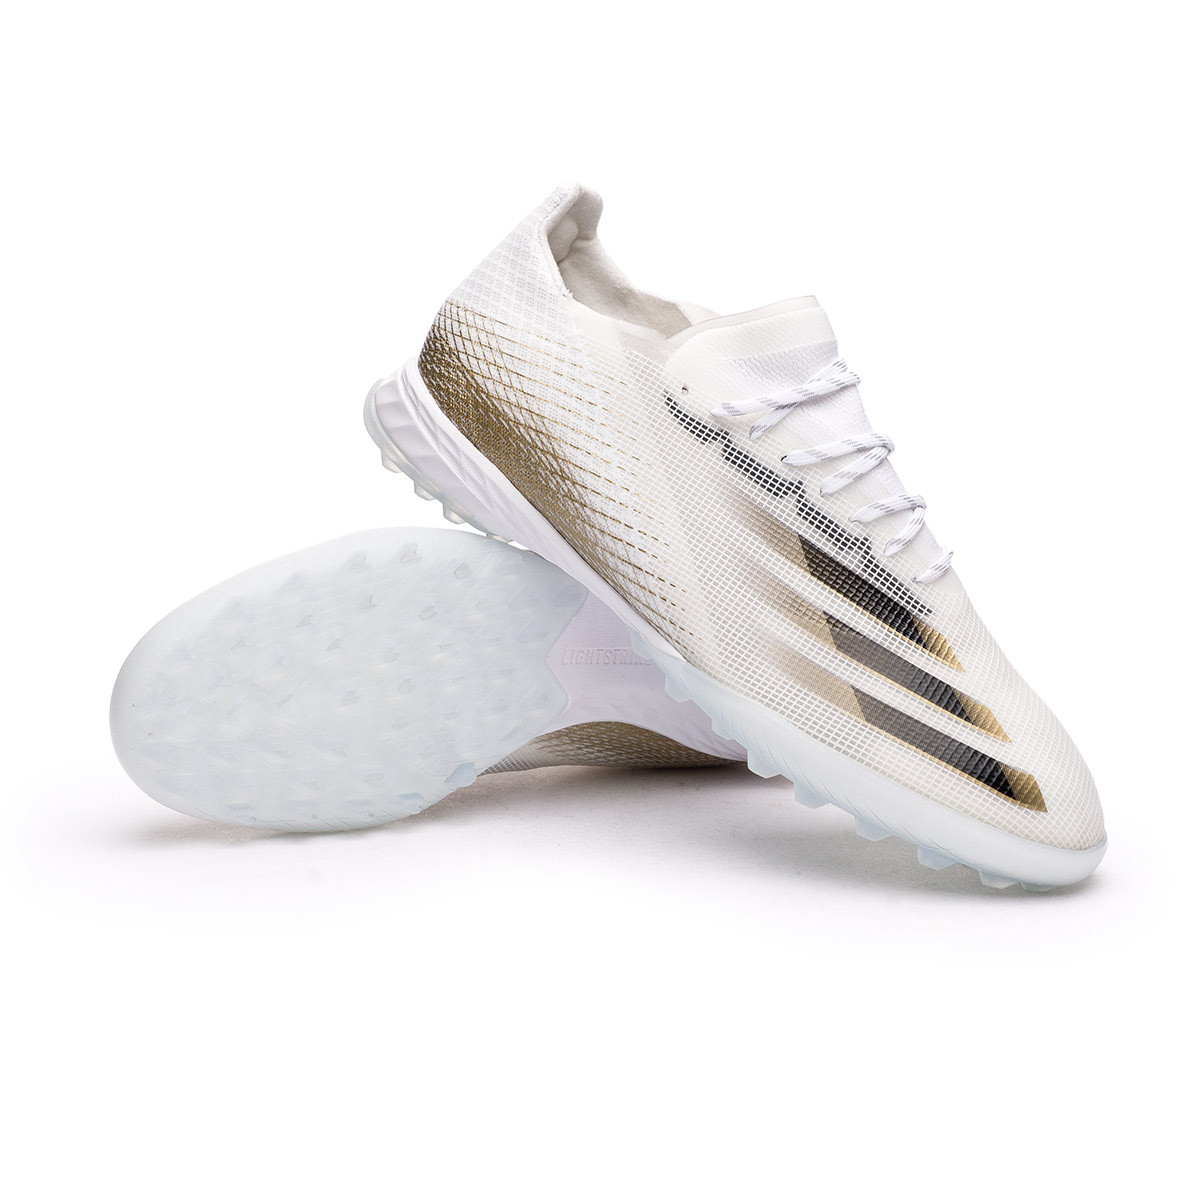 cama veterano repertorio  Football Boots adidas X Ghosted.1 Turf White-Black-Metallic gold melange -  Football store Fútbol Emotion